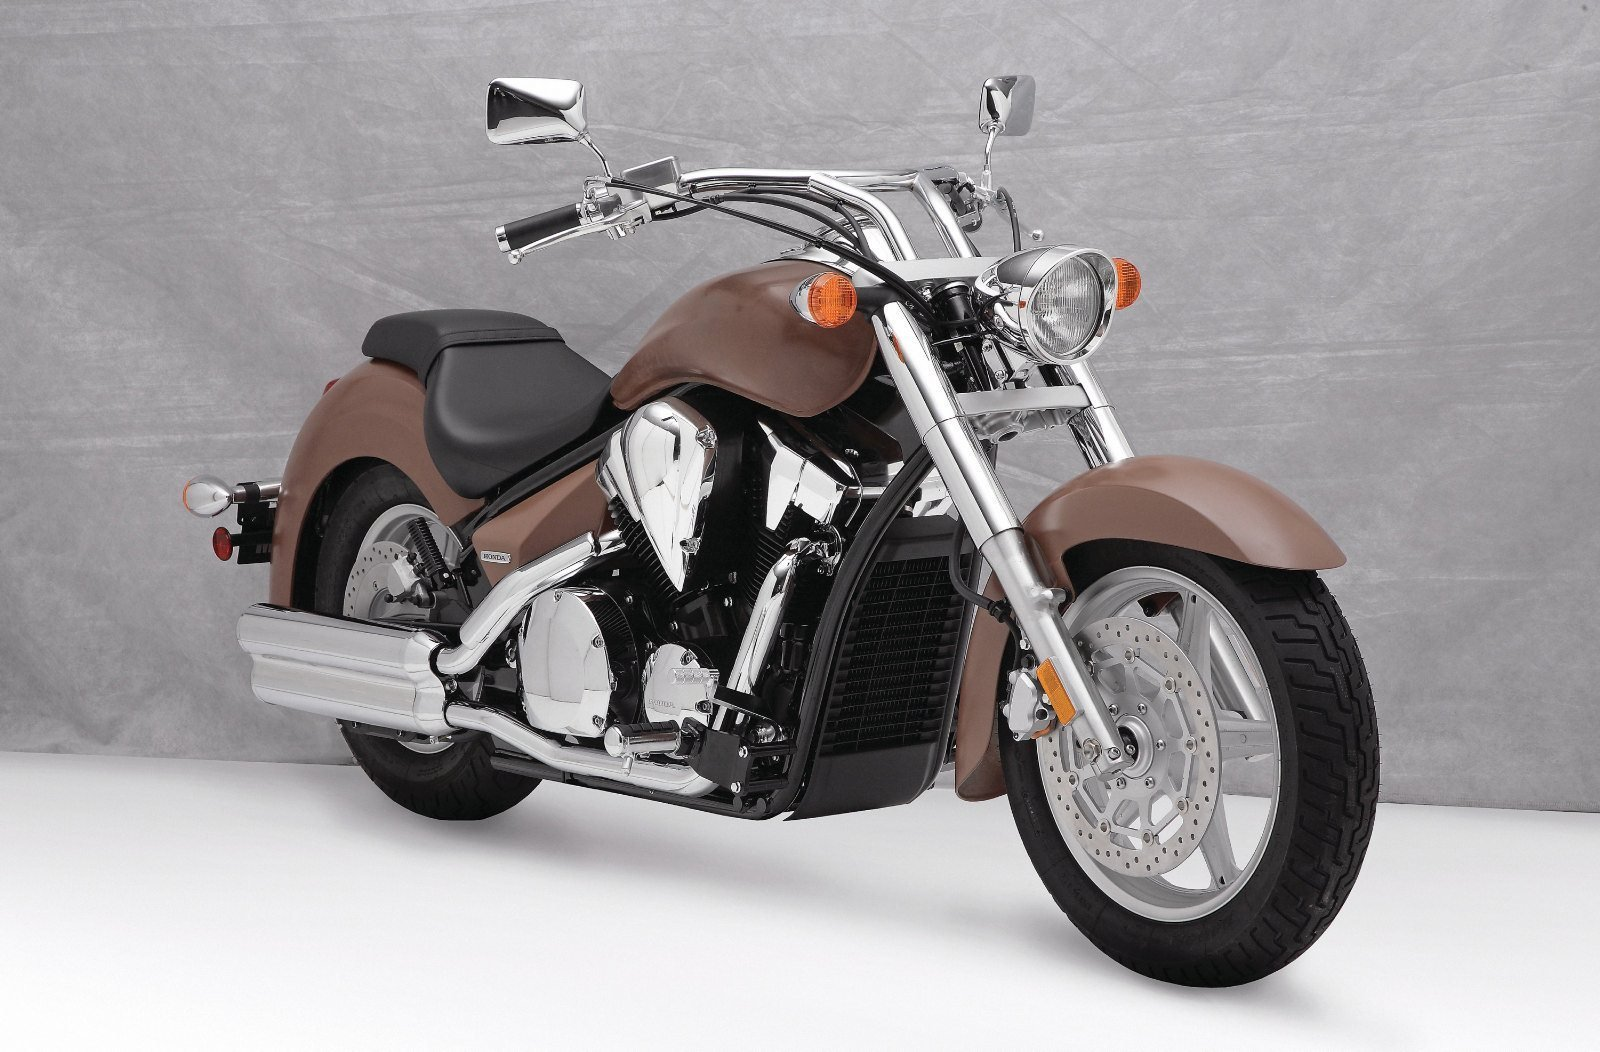 2012 Honda Stateline Pictures, Photos, Wallpapers.